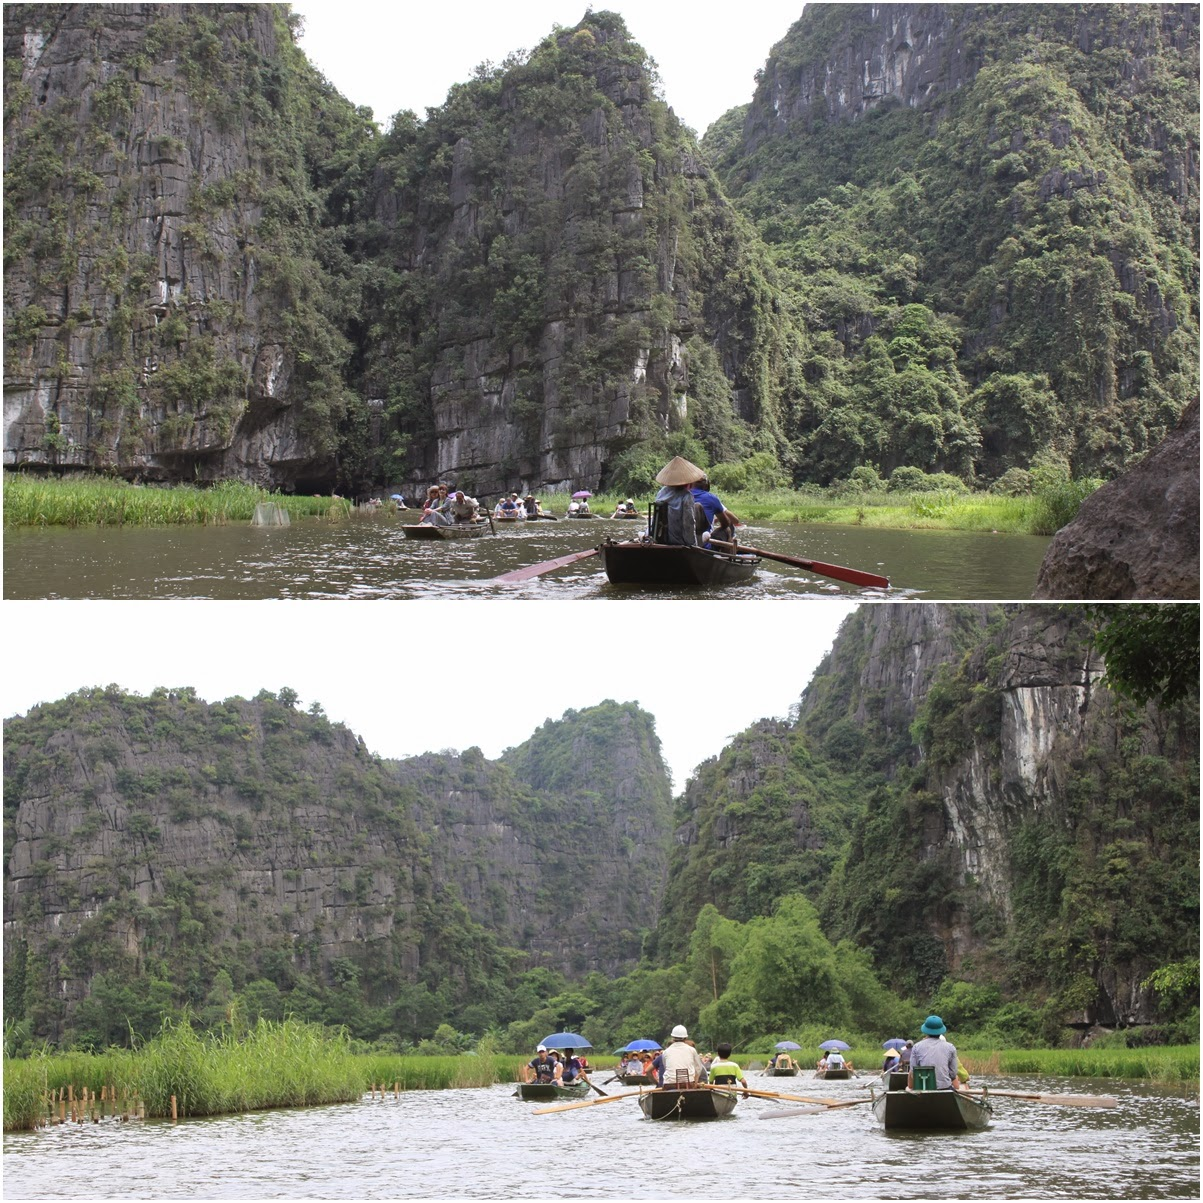 The beautiful scenery view of heading back to the river port at Tam Coc near the city of Ninh Bình in northern Vietnam